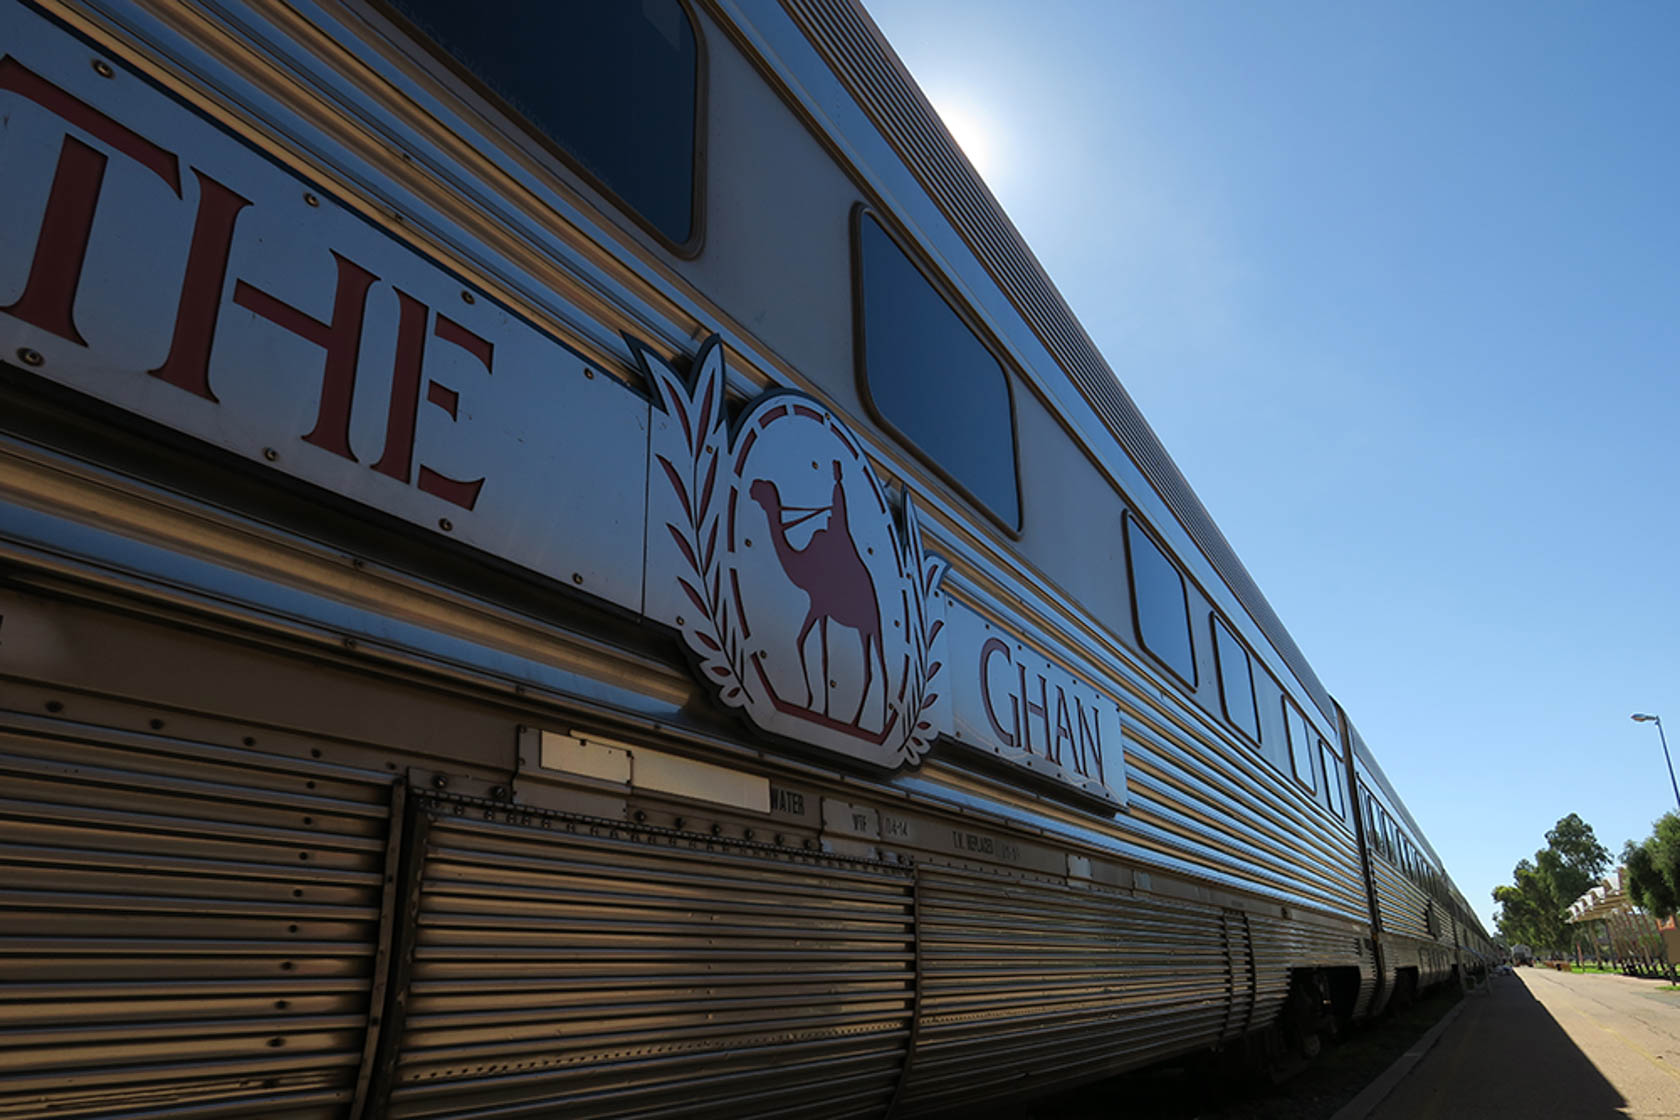 The Ghan train shot on the PowerShot G3 X